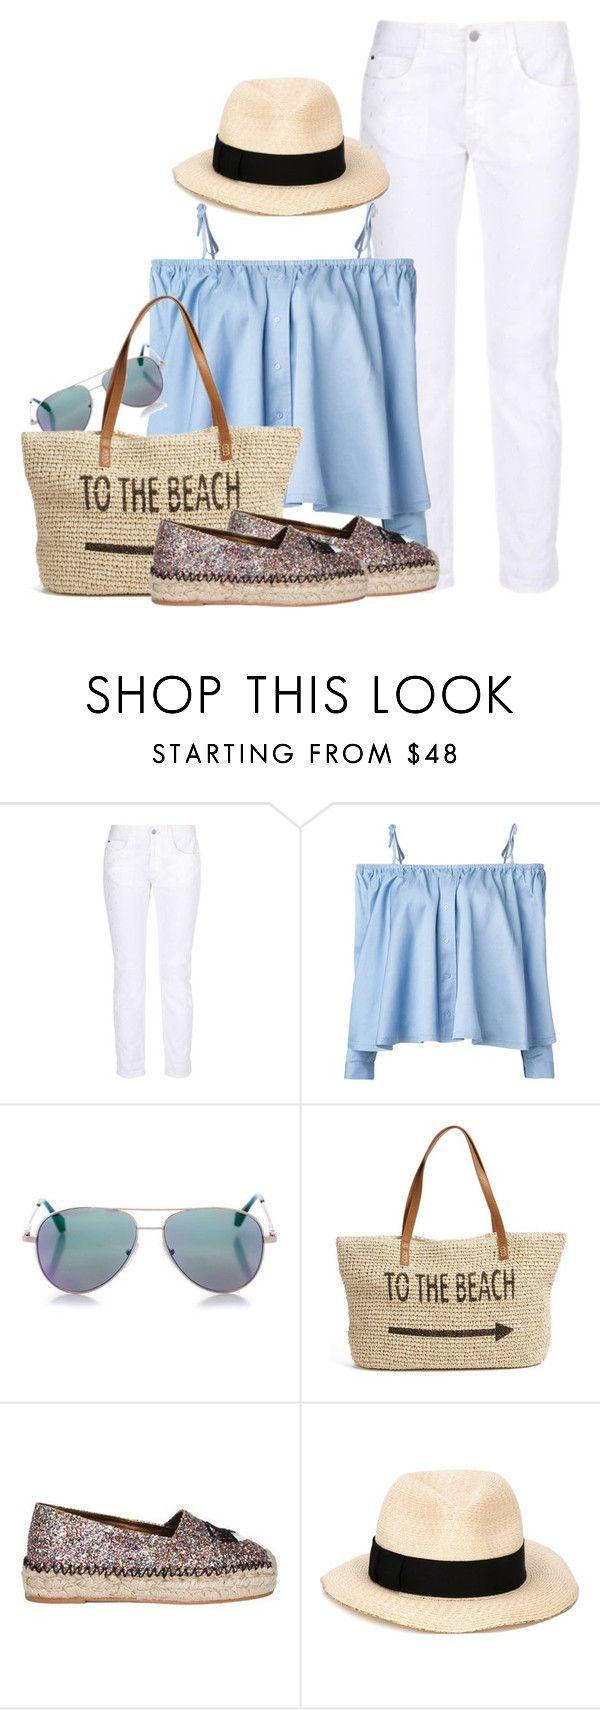 """""""to the beach"""" by ele88na ❤ liked on Polyvore featuring STELLA McCARTNEY, Sandy Liang, Cutler and Gross, Straw Studios, Chiara Ferragni and Eugenia Kim"""